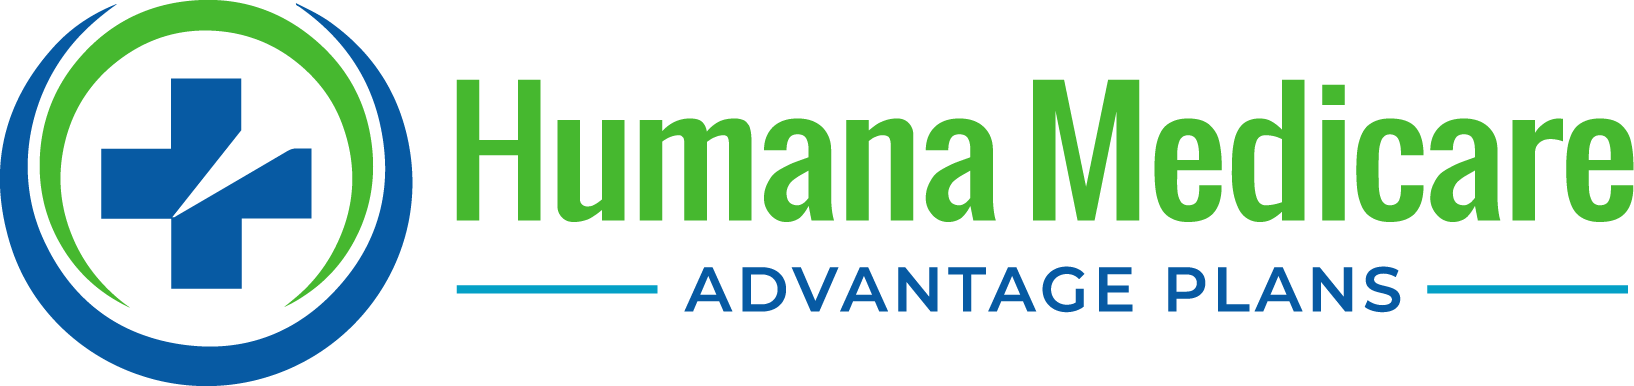 Humana Medicare Advantage Plans Offers HMO, PPO, and Gold Plus HMO Plans to Individuals Looking to Get More from Their Medicare Coverage